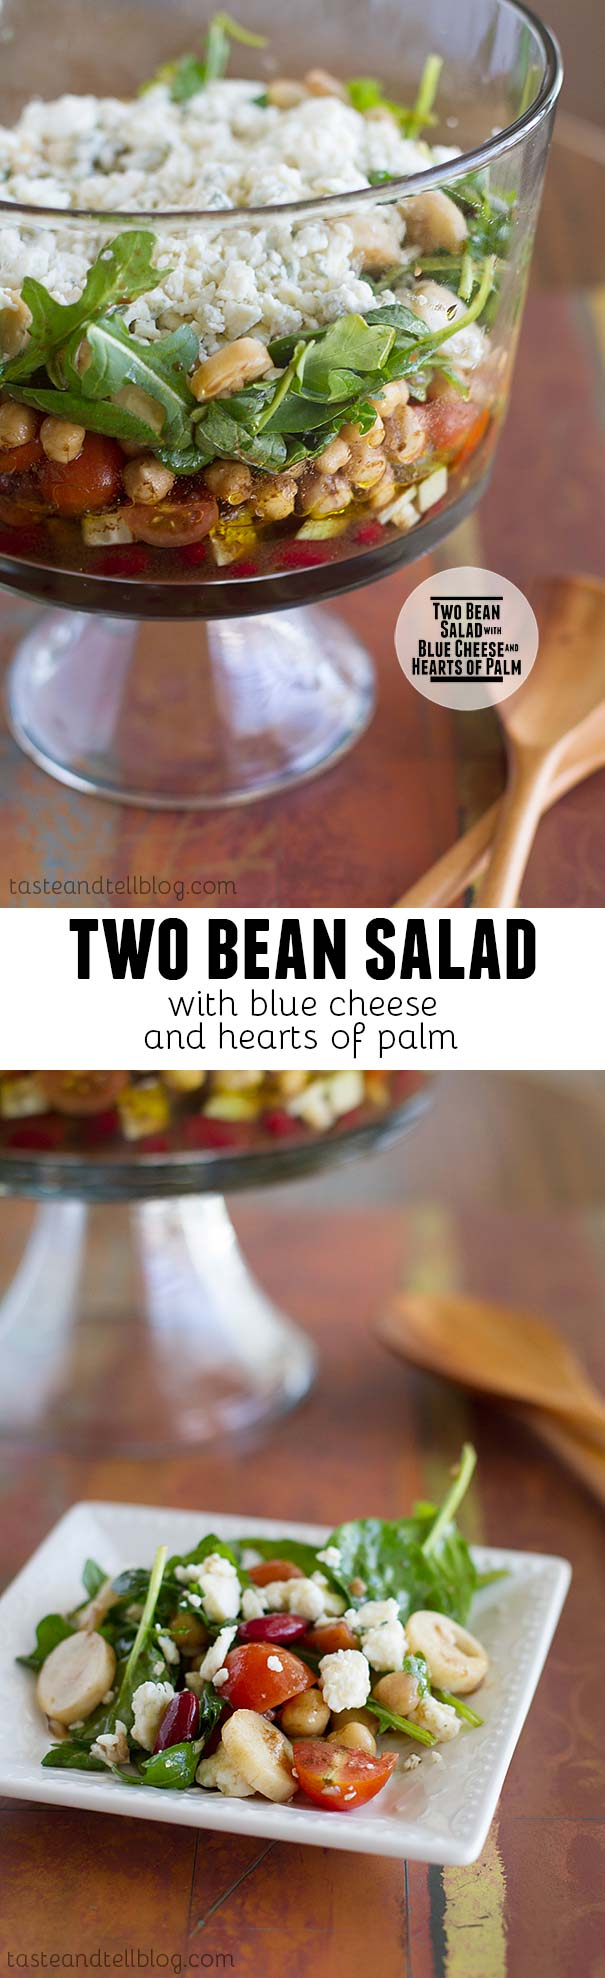 This Two Bean Salad with Blue Cheese and Hearts of Palm is a layered bean salad with beans, cucumbers, tomatoes, chickpeas, arugula, hearts of palm and blue cheese with a delicious vinaigrette.